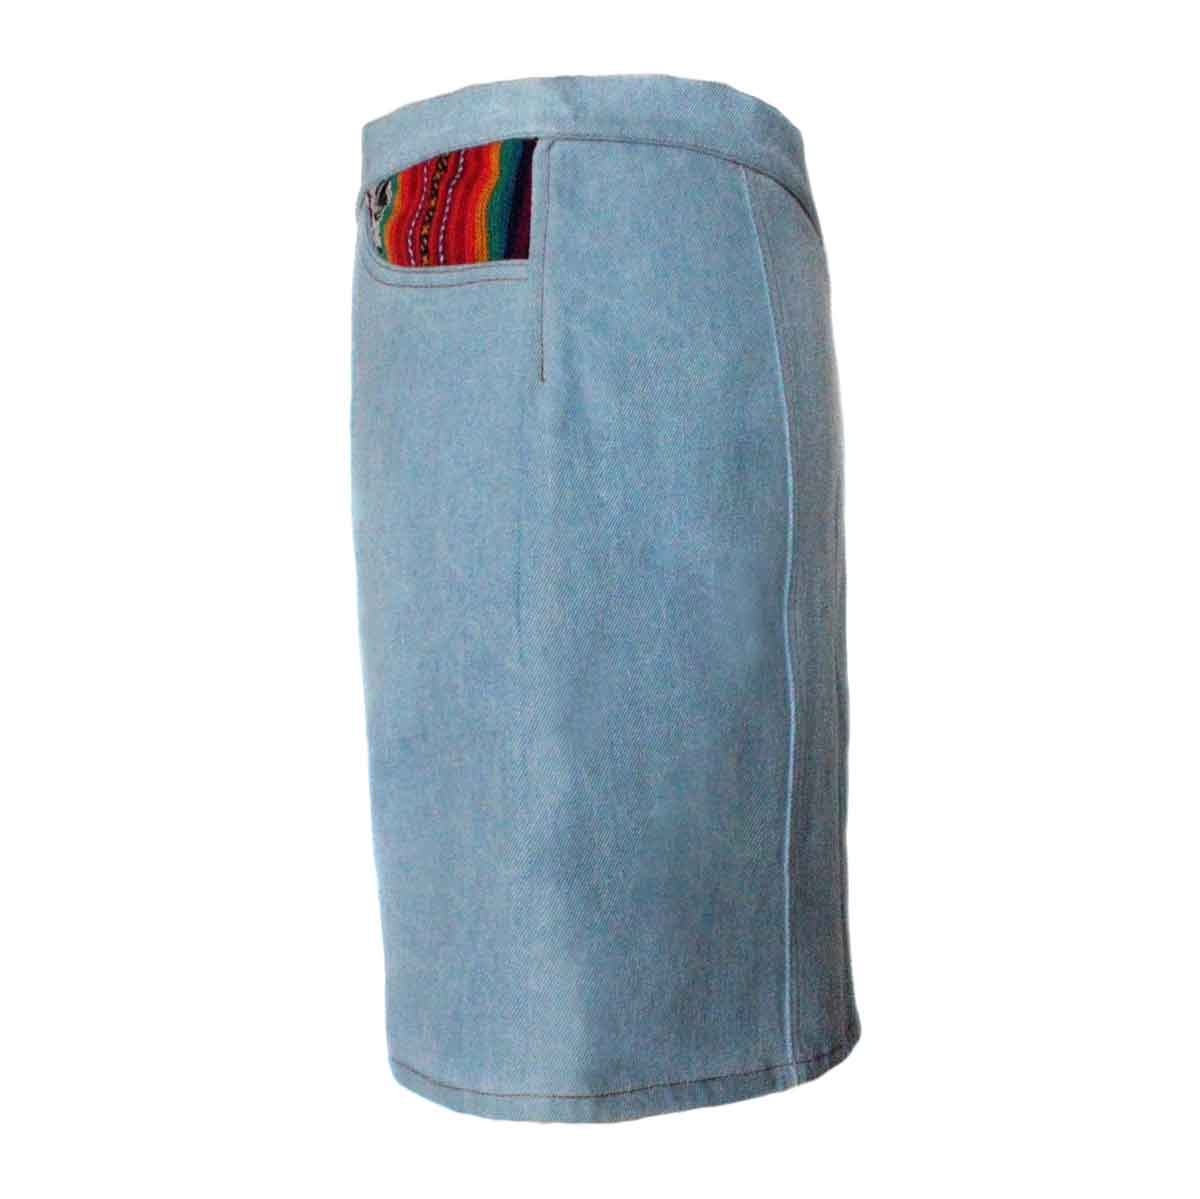 Inka-Products-Mini-jupe Femme Denim Délavé-Tissu Traditionnel Andin Orange-2